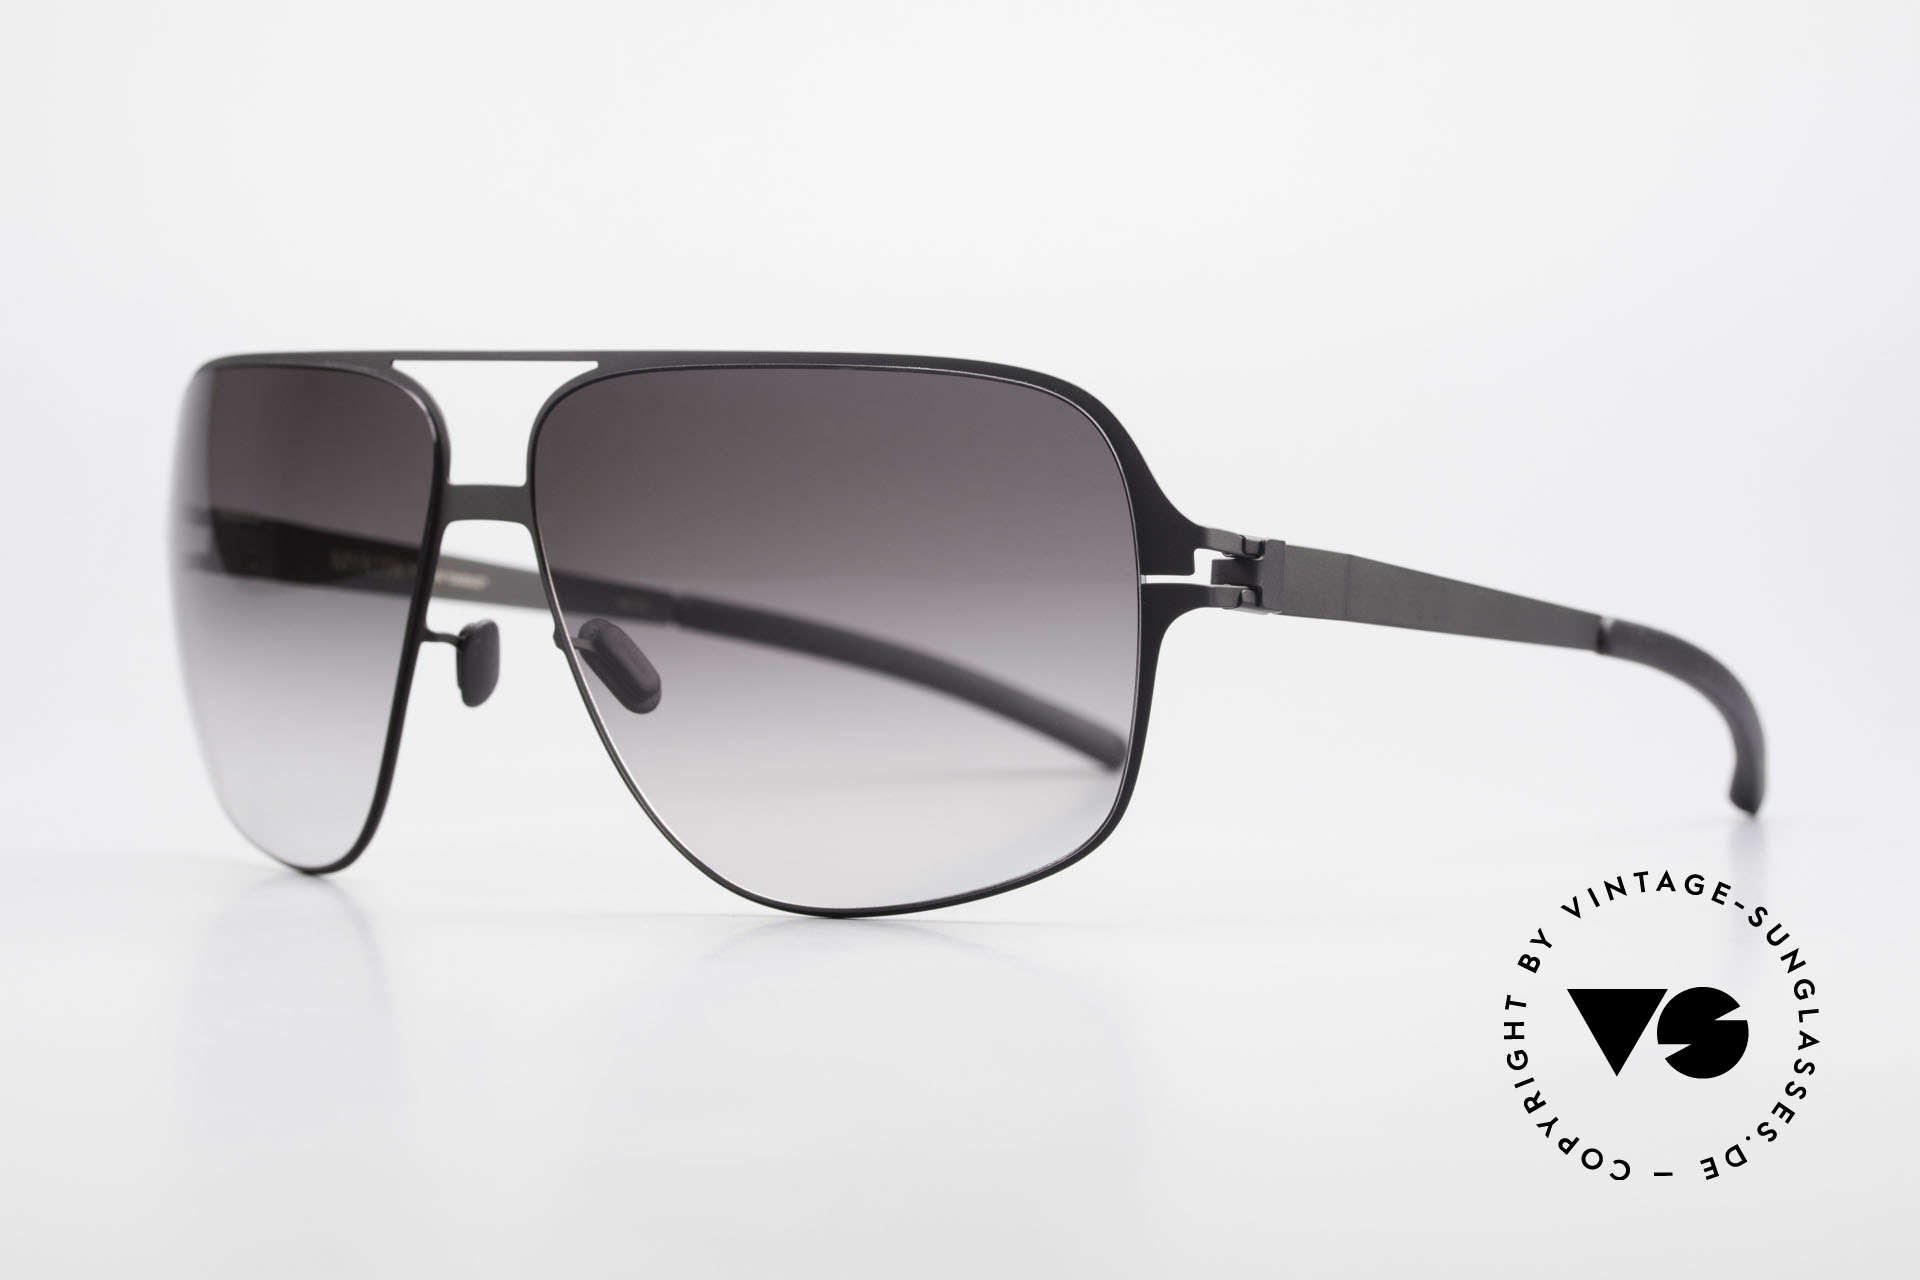 Mykita Cassius XXL Sunglasses Lenny Kravitz, Collection No.1 Cassius Black, black-gradient, Gr. 64/13, Made for Men